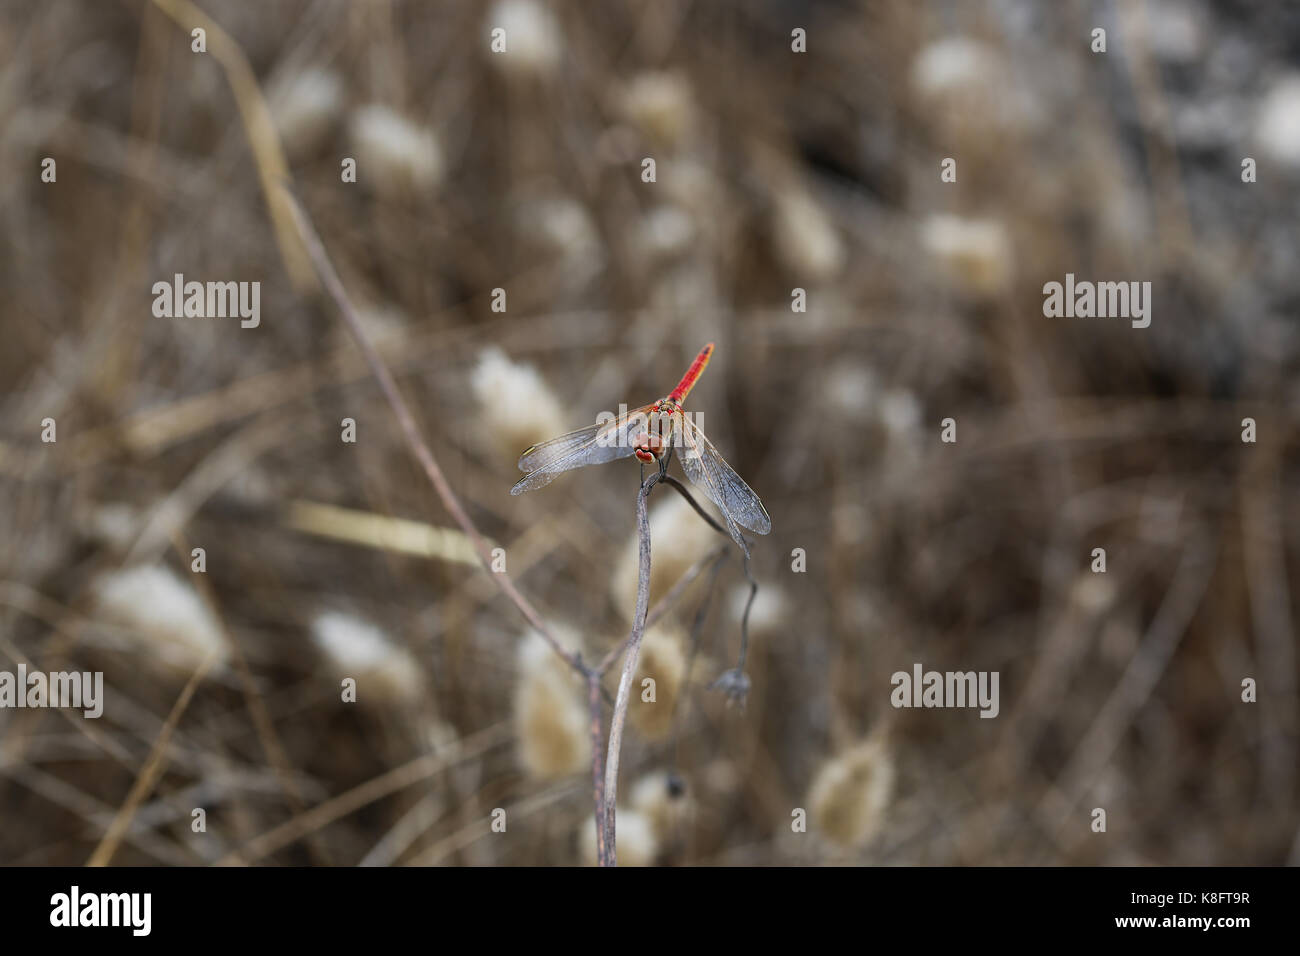 red dragonfly - Stock Image